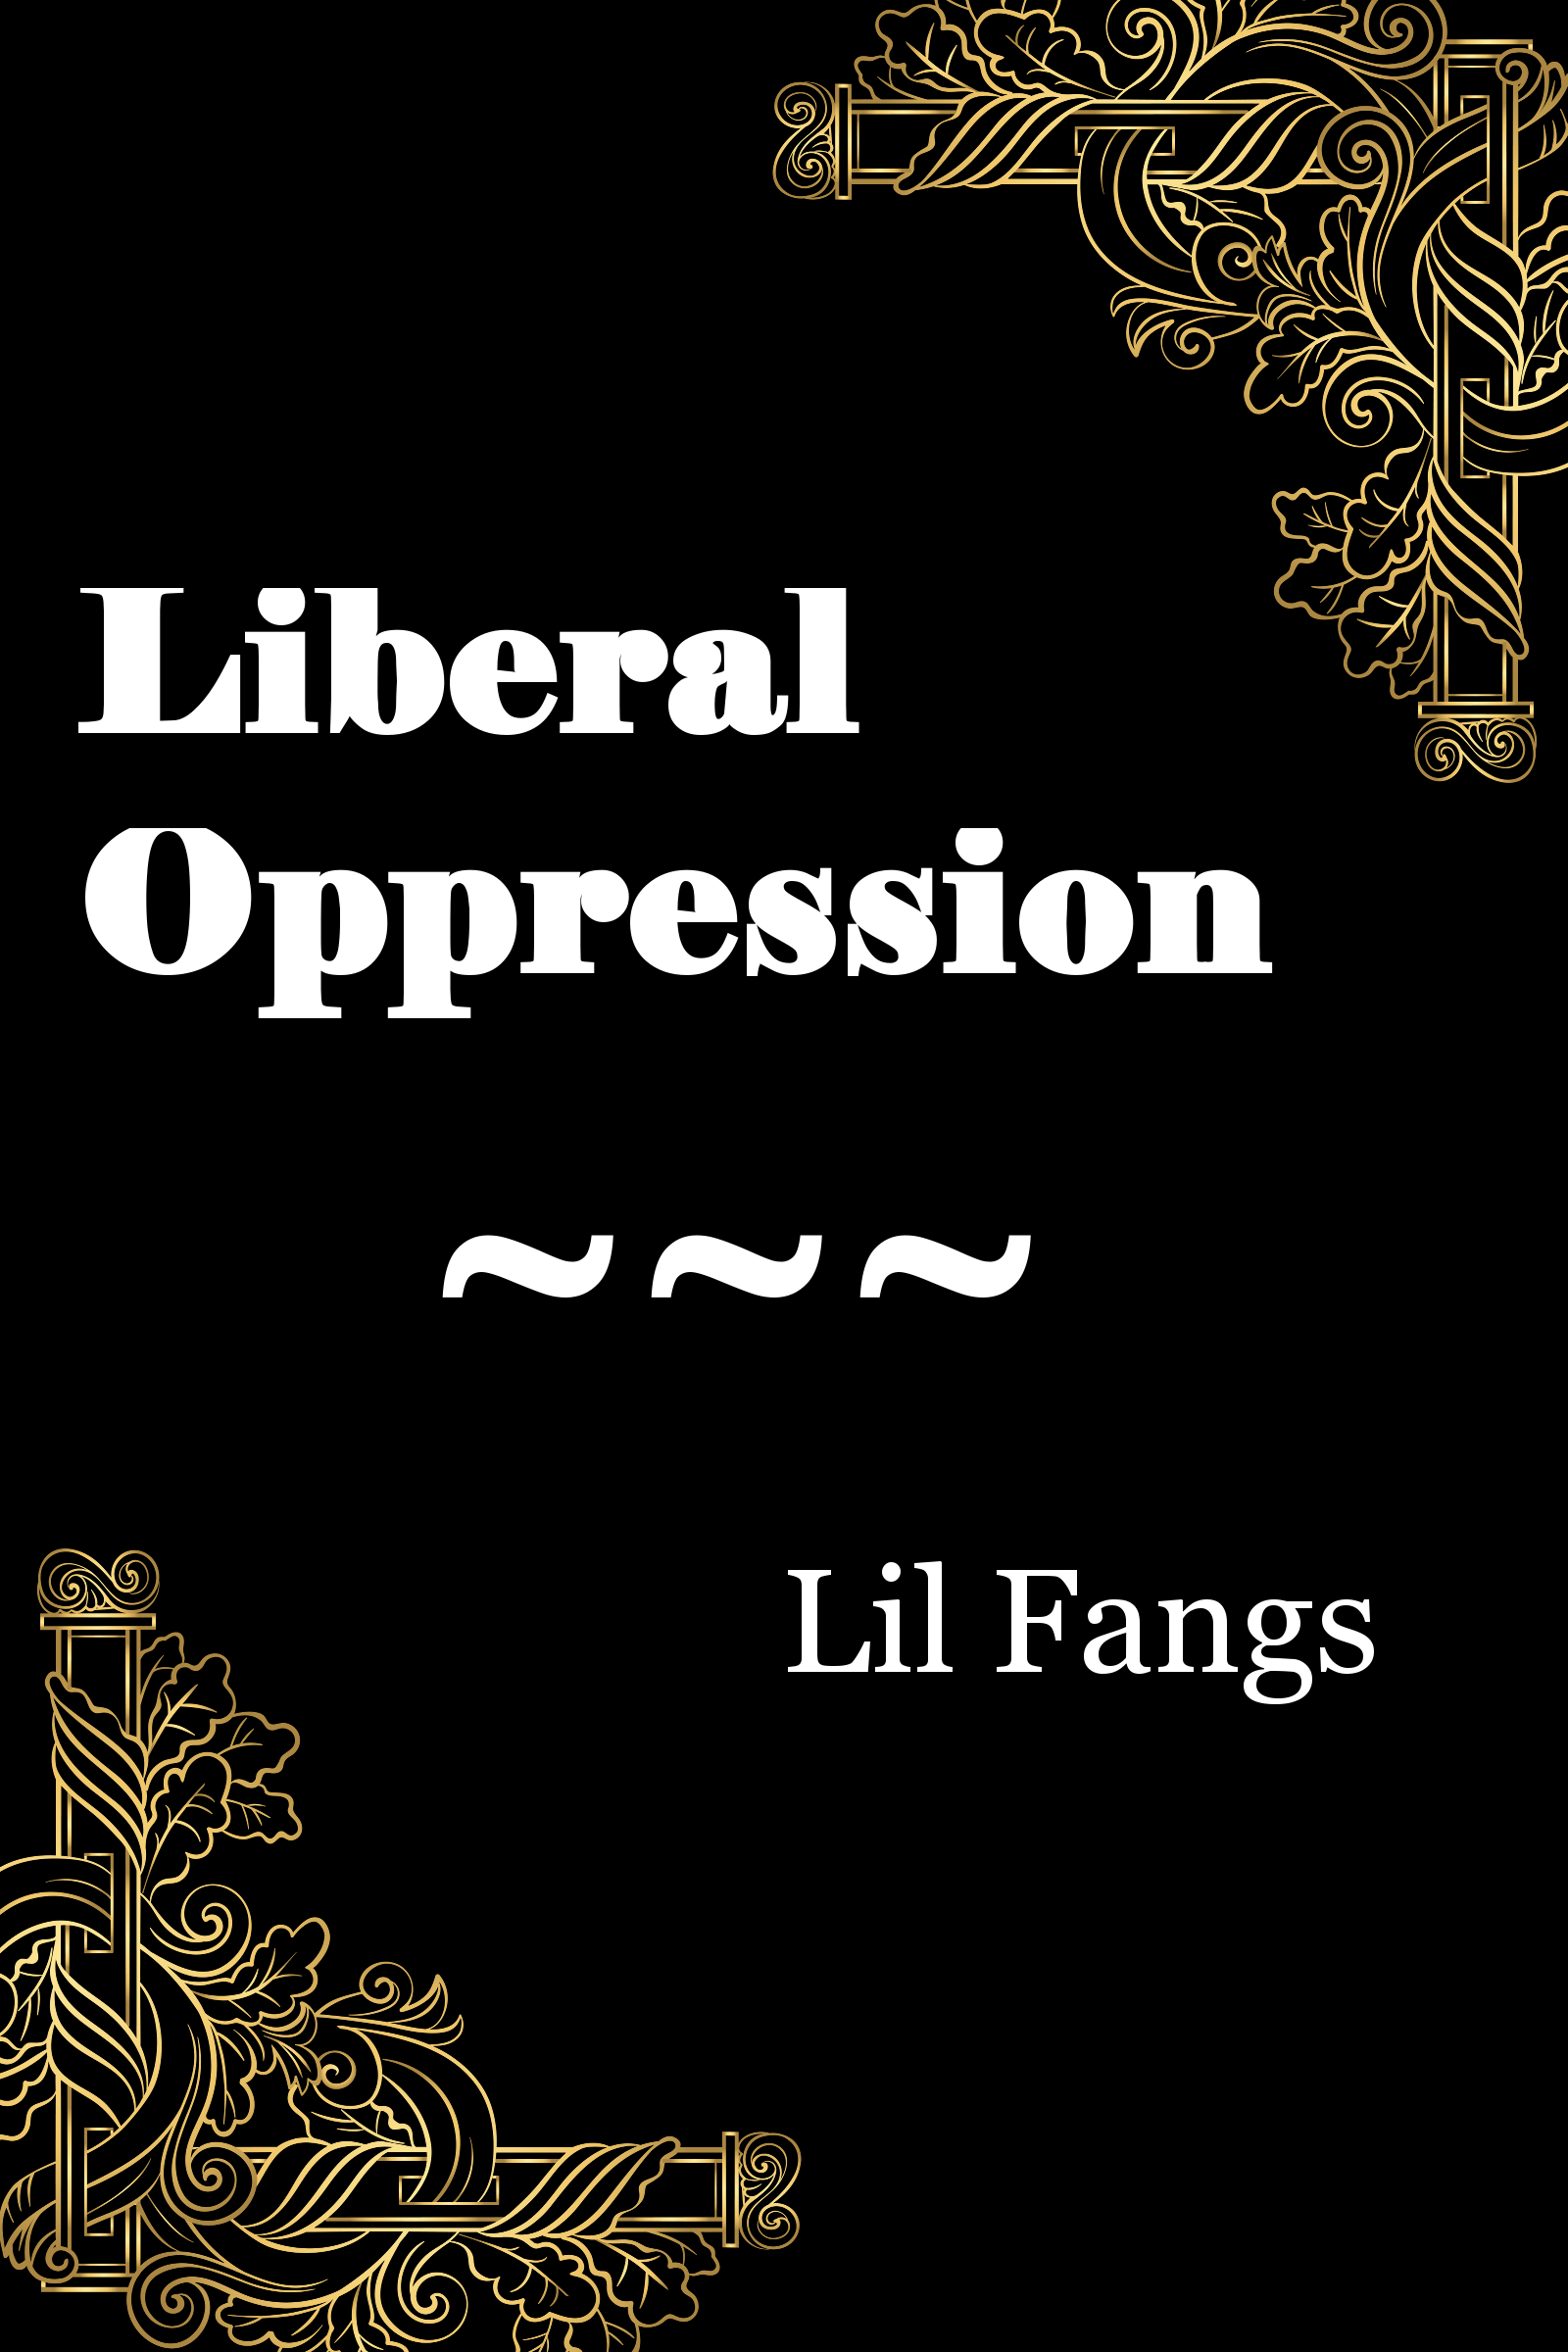 Liberal Oppression by Lil Fangs Free Edition cover